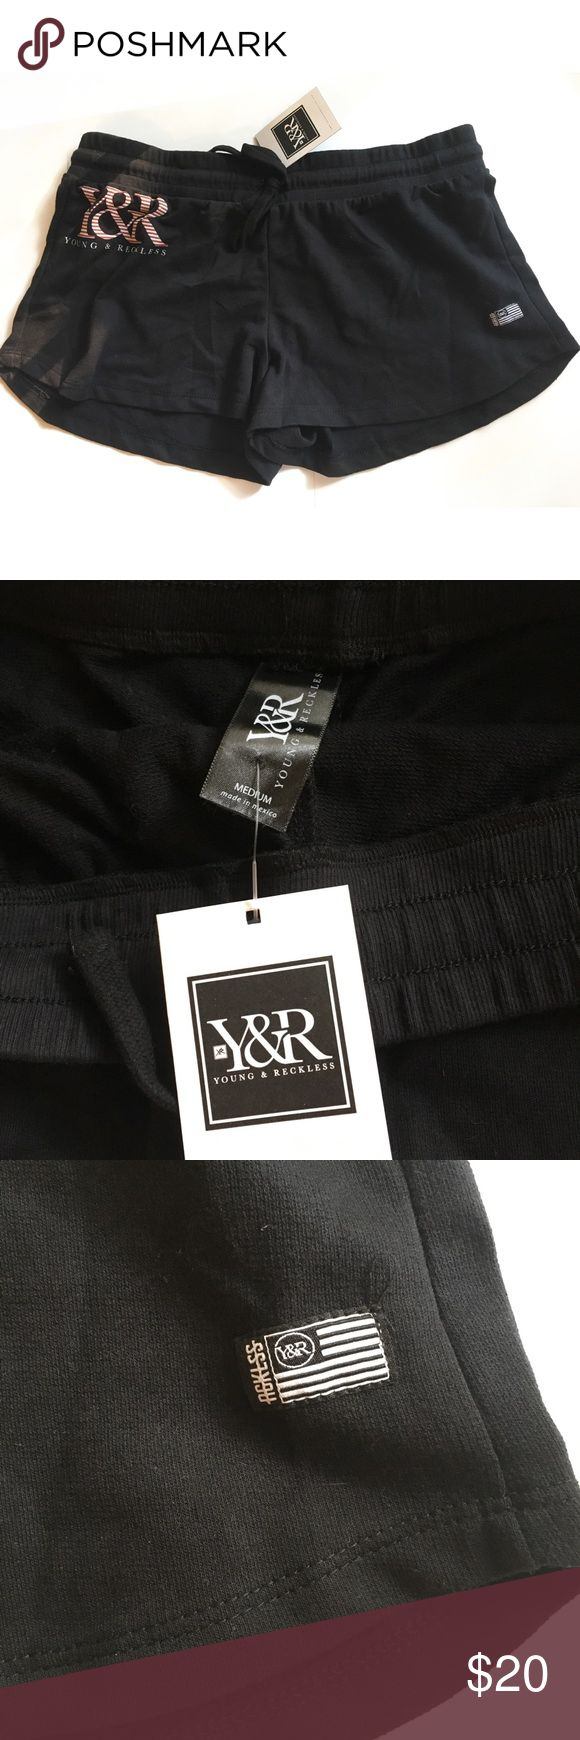 Young & Reckless black logo shorts Brand new Y&R logo